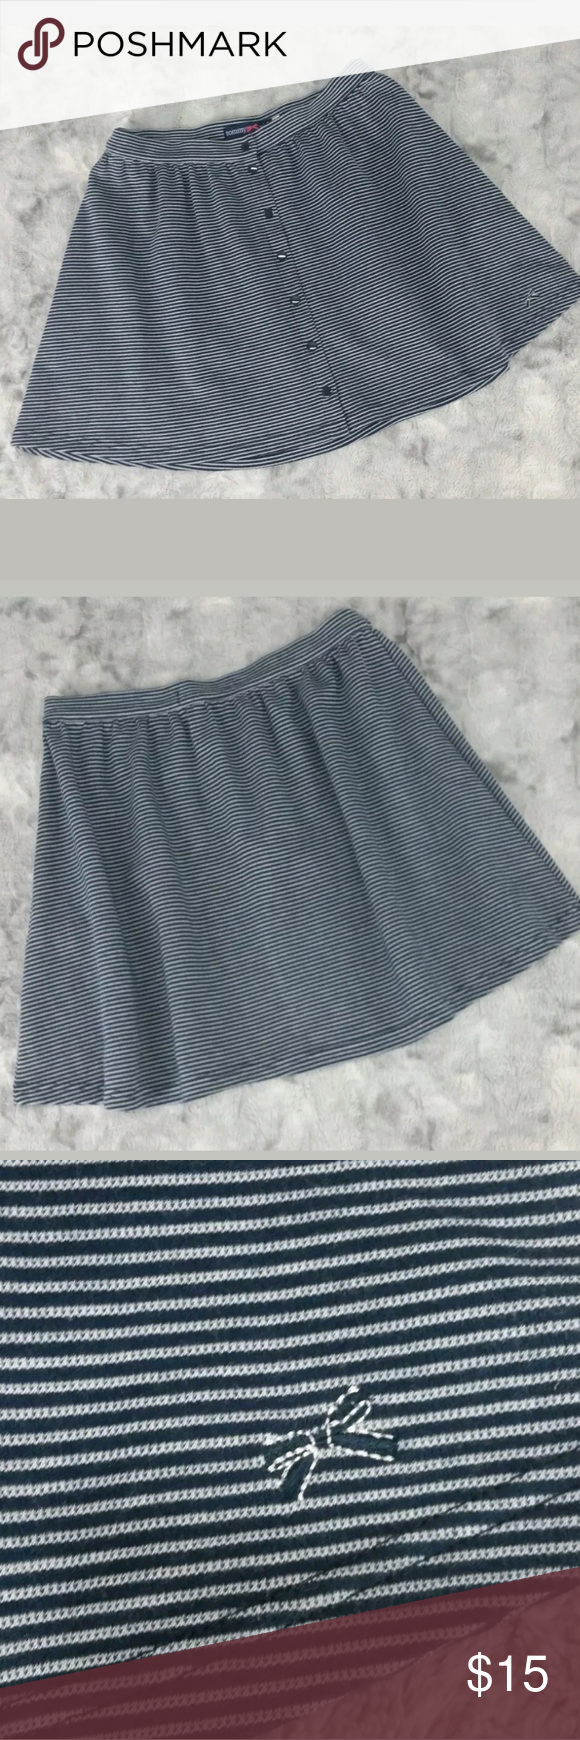 f00b019eabf5e Tommy Hilfiger Skirt L Blue Striped Skater Knit Tommy Girl (Tommy Hilfiger)  Size Large Navy Blue/White Striped Textured Fabric, Snaps Down Front 100%  Cotton ...